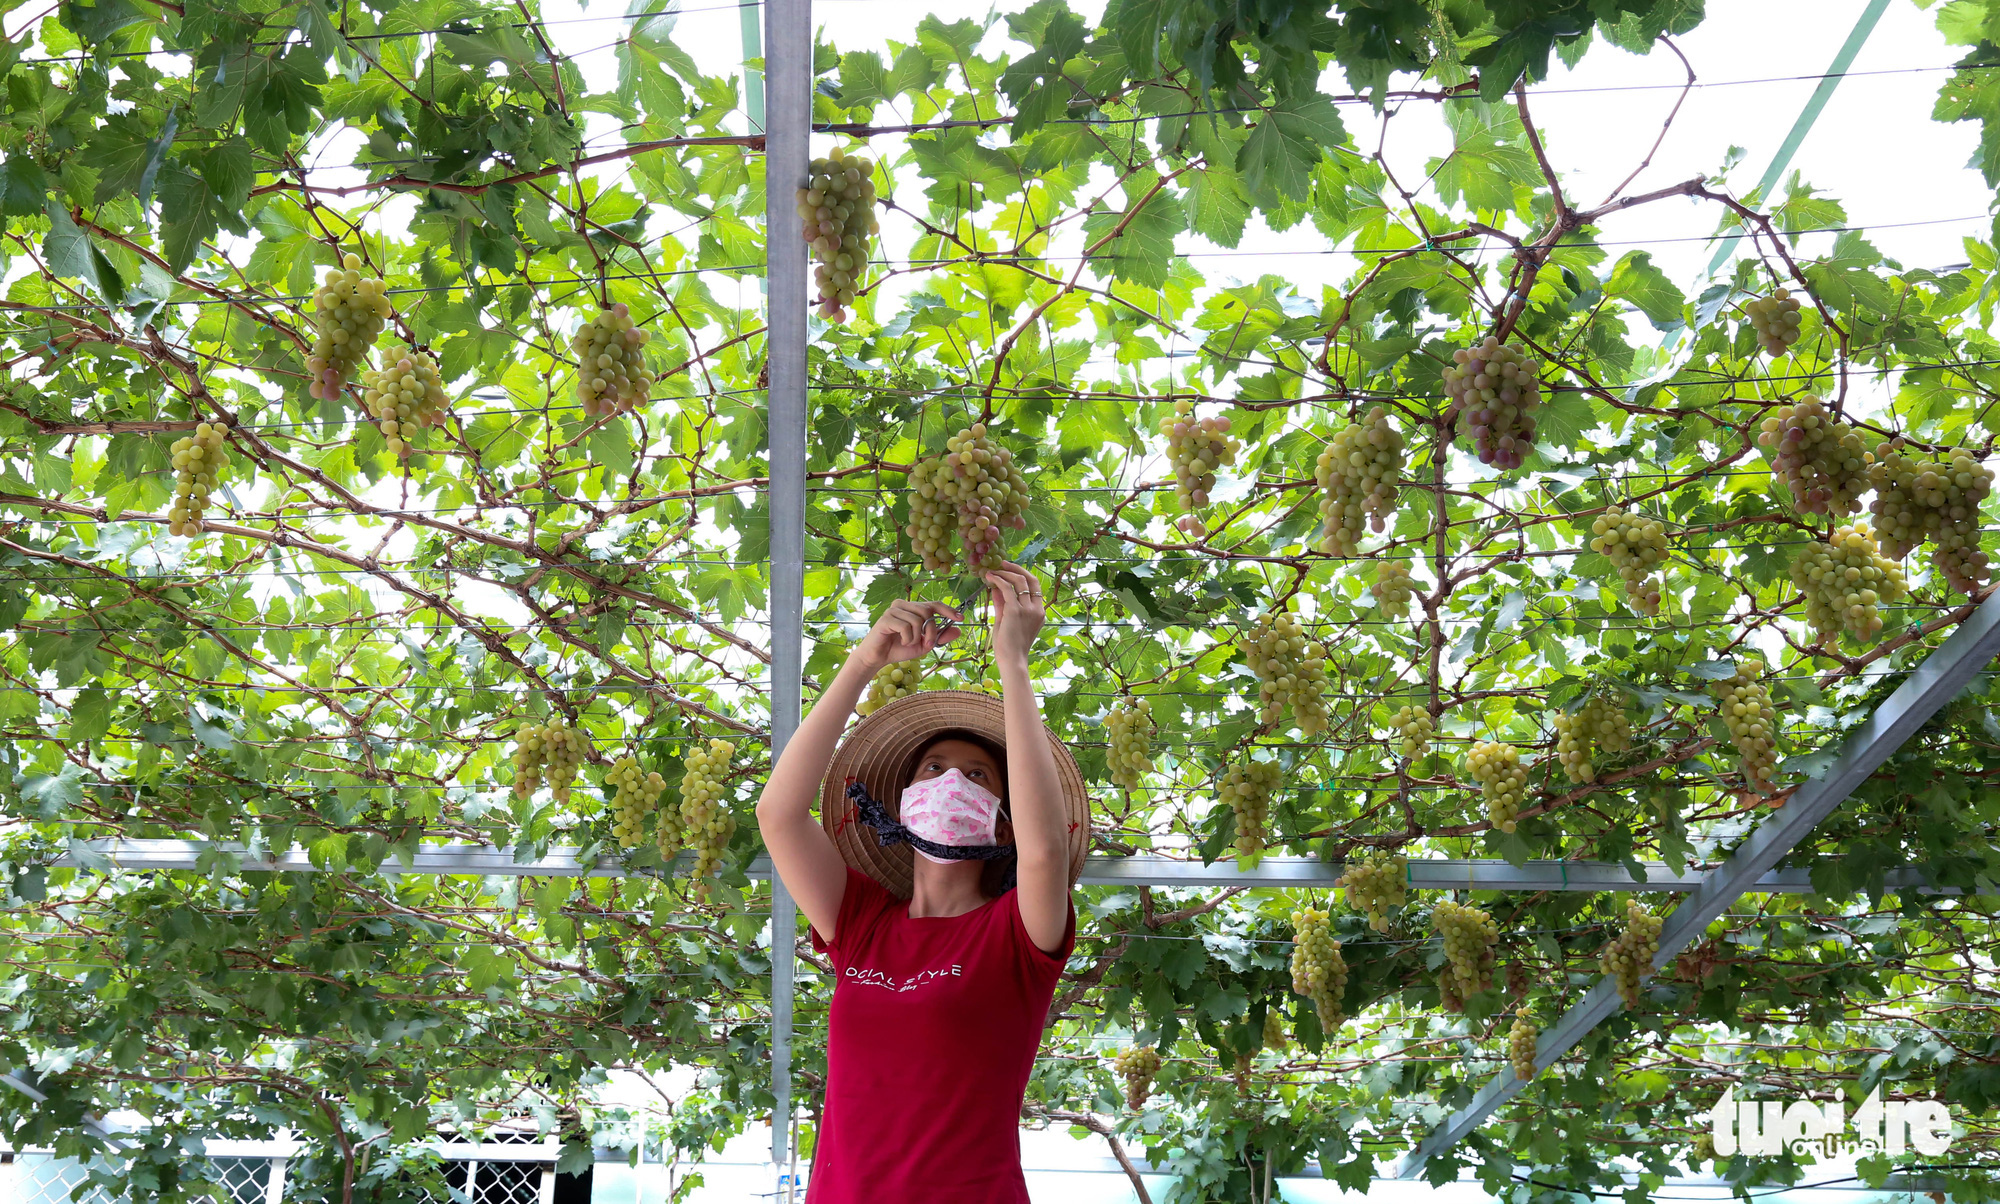 A woman harvests ripe grapes at Truong Van O's home garden in District 9, Ho Chi Minh City, Vietnam. Photo: Thao Le / Tuoi Tre